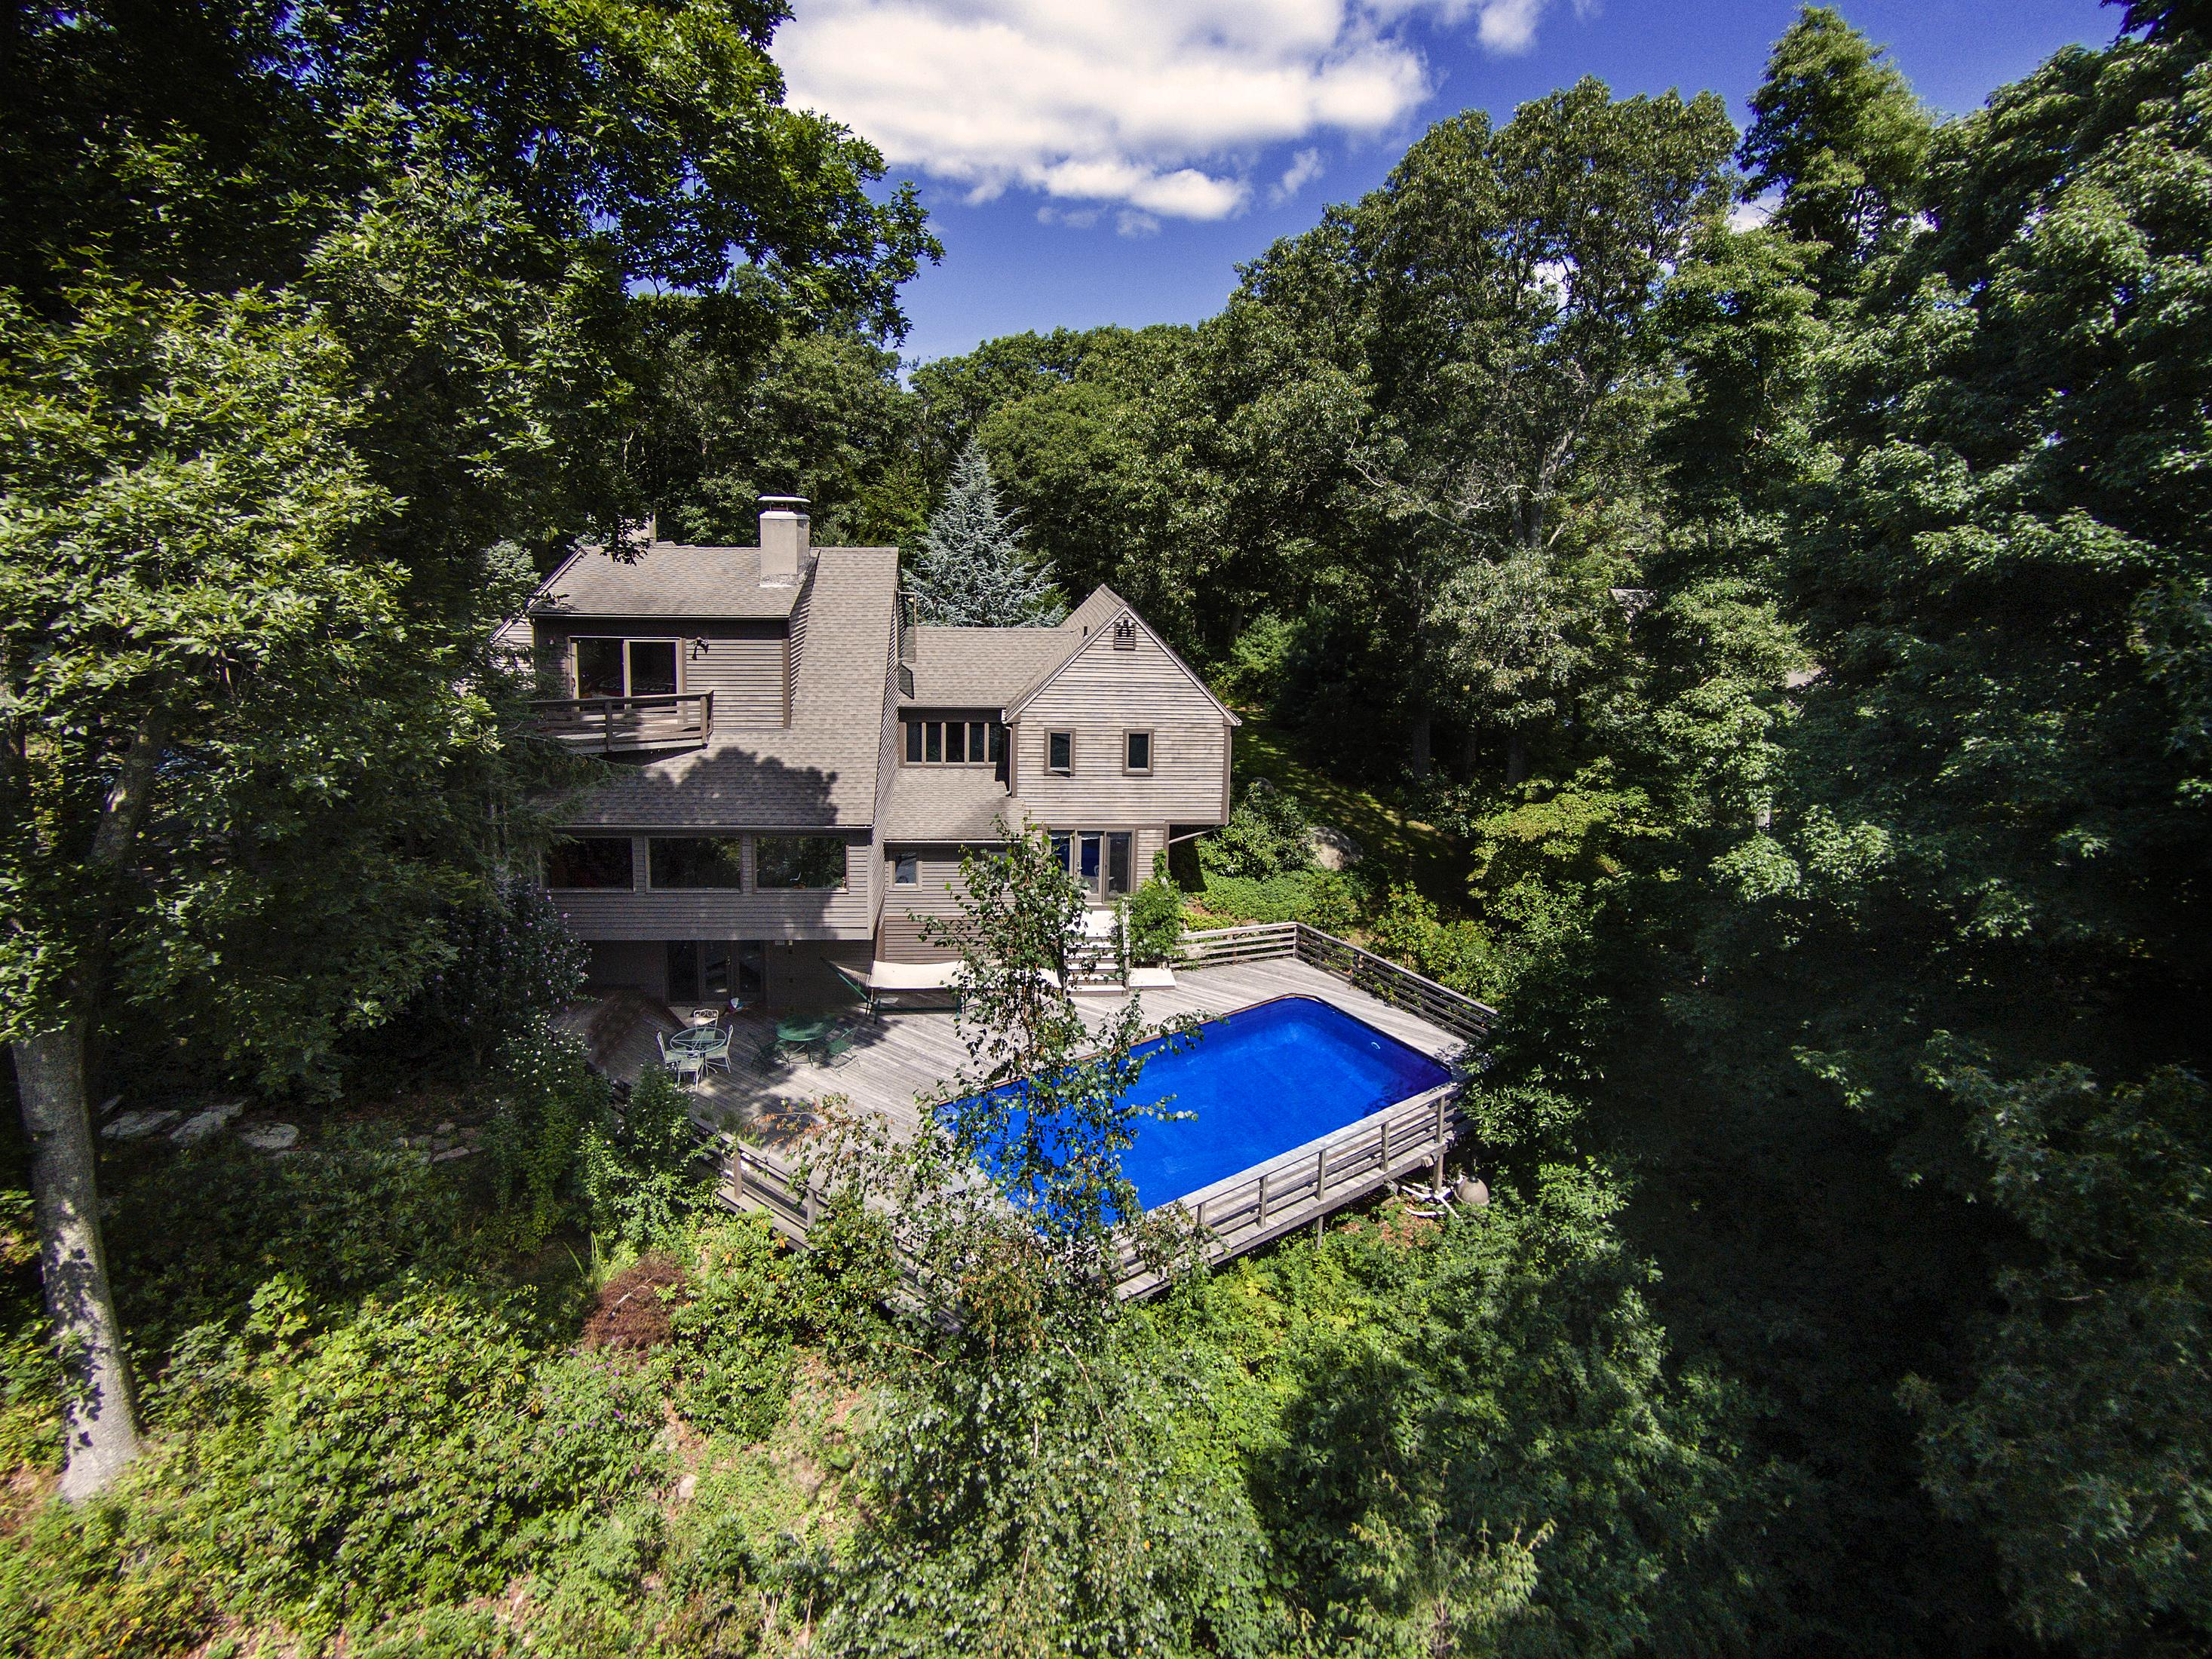 Single Family Home for Sale at 91 Three Corners Rd Guilford, Connecticut, 06437 United States